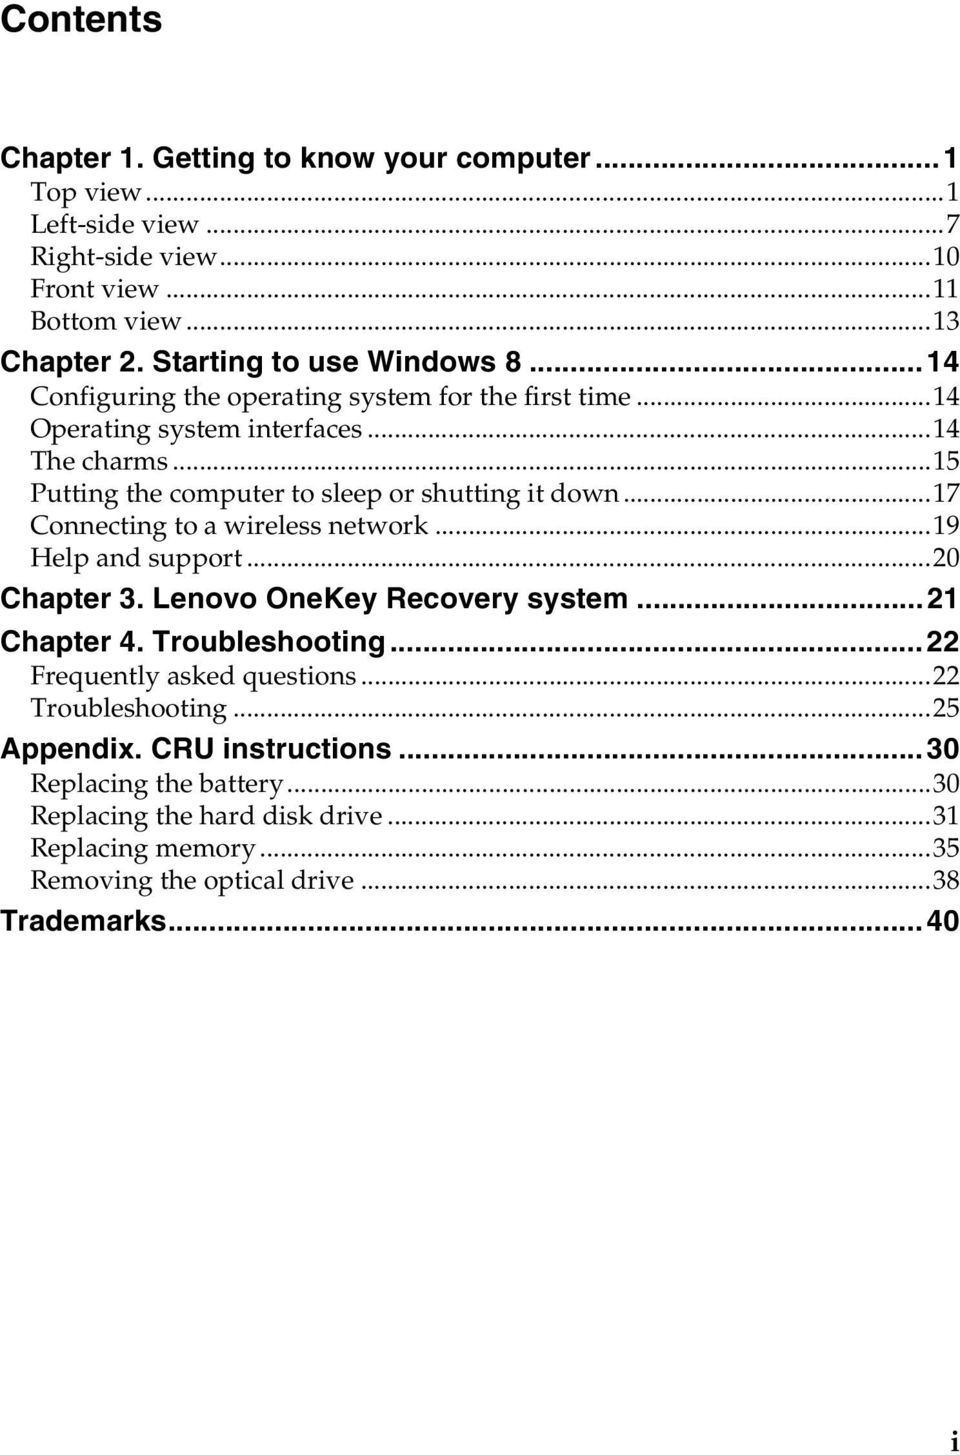 ..15 Putting the computer to sleep or shutting it down...17 Connecting to a wireless network...19 Help and support...20 Chapter 3. Lenovo OneKey Recovery system...21 Chapter 4.